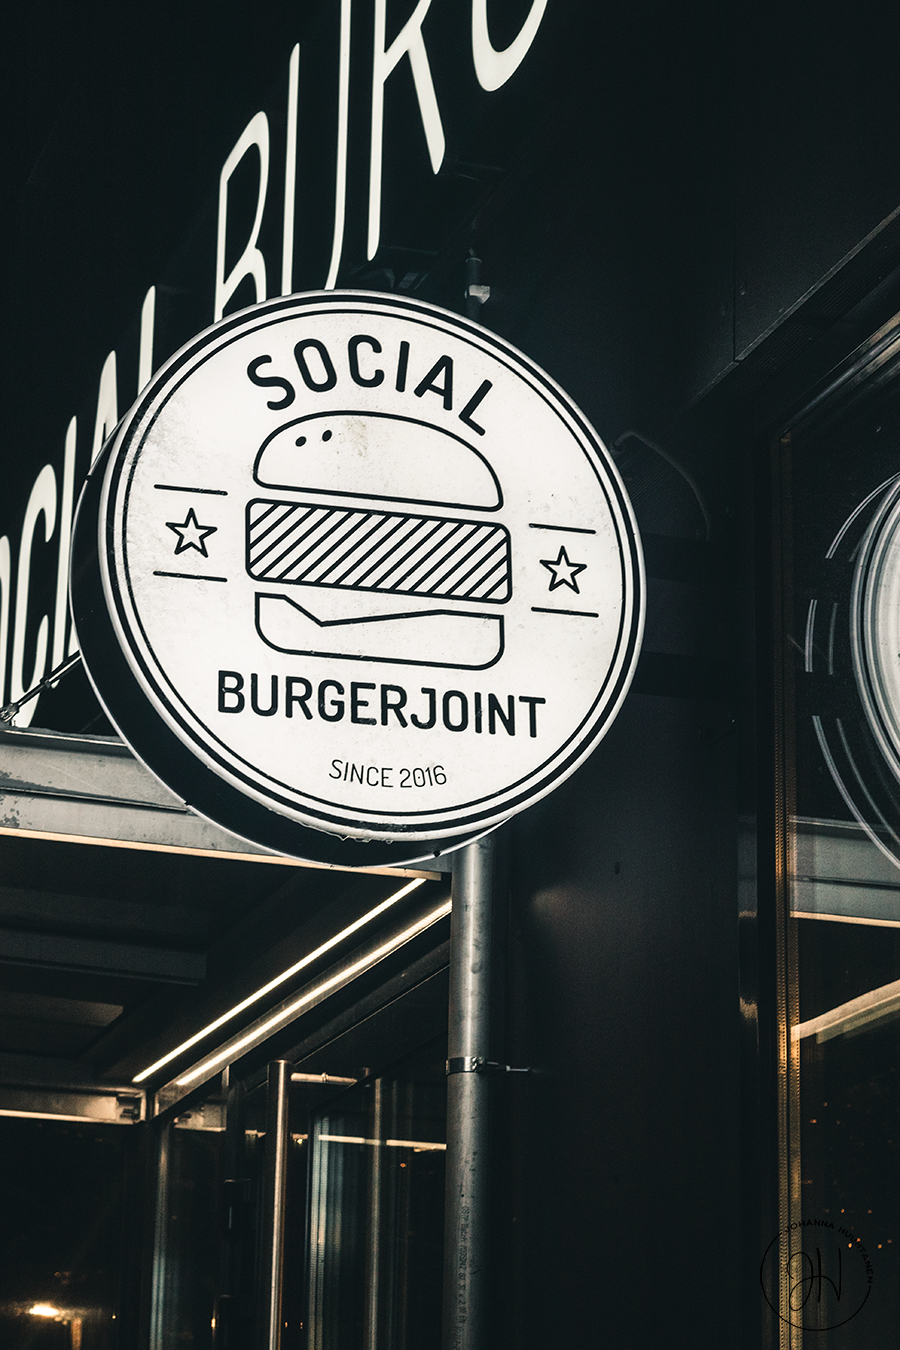 Social Burger Joint since 2016